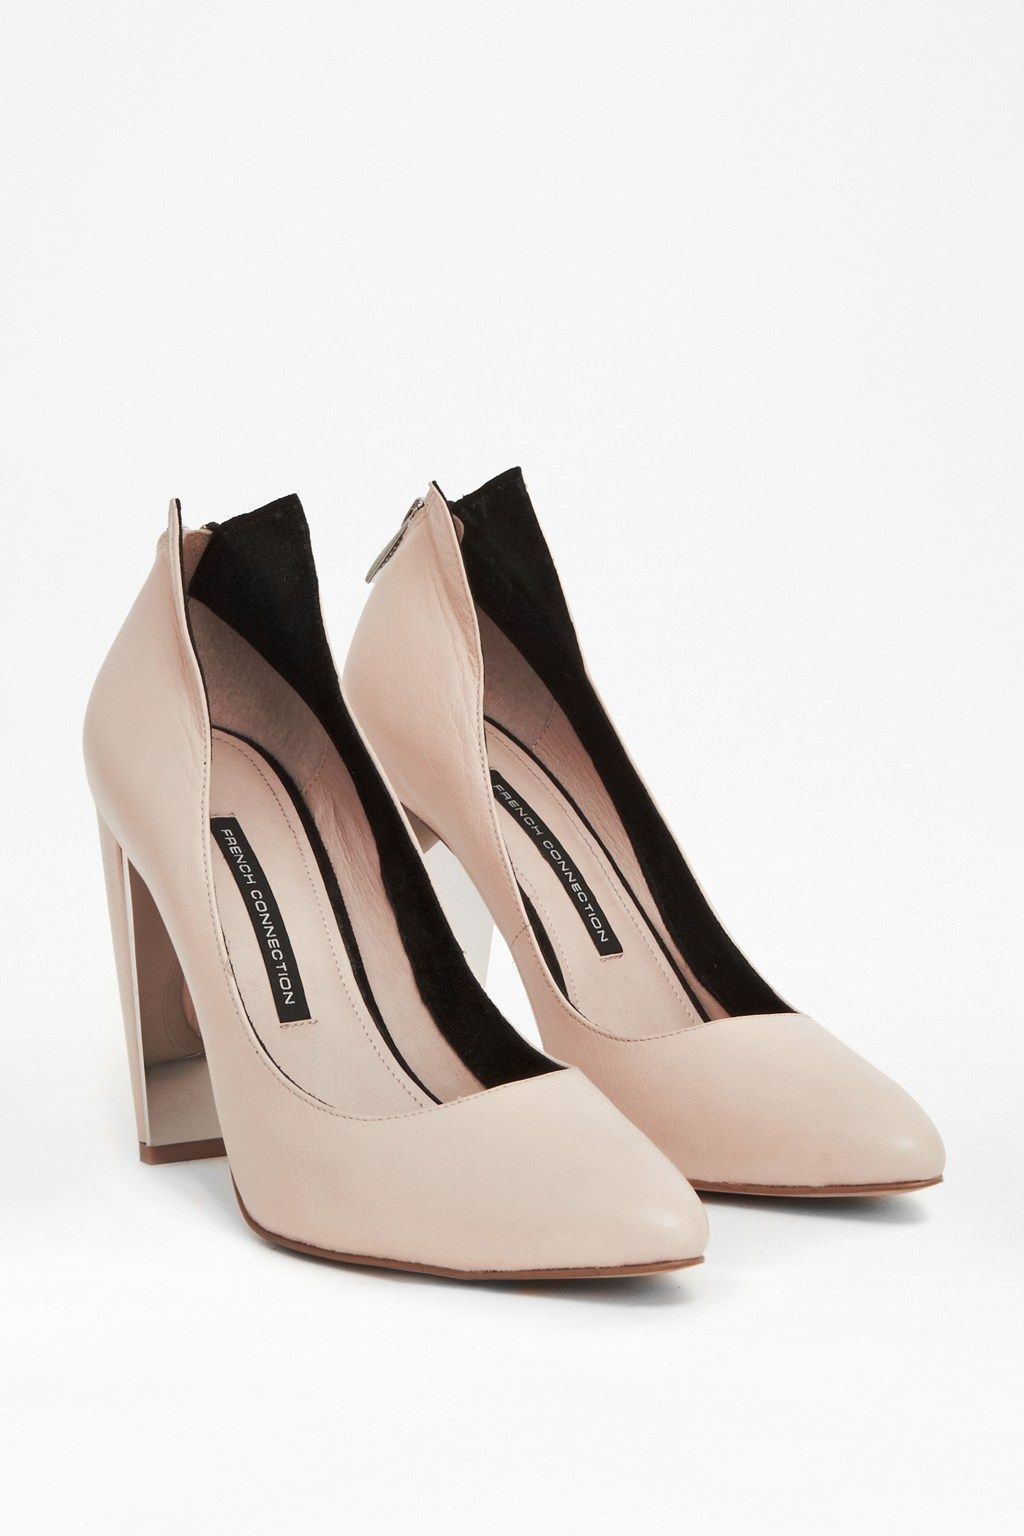 Myka Zipped Leather Court Heels - French Connection